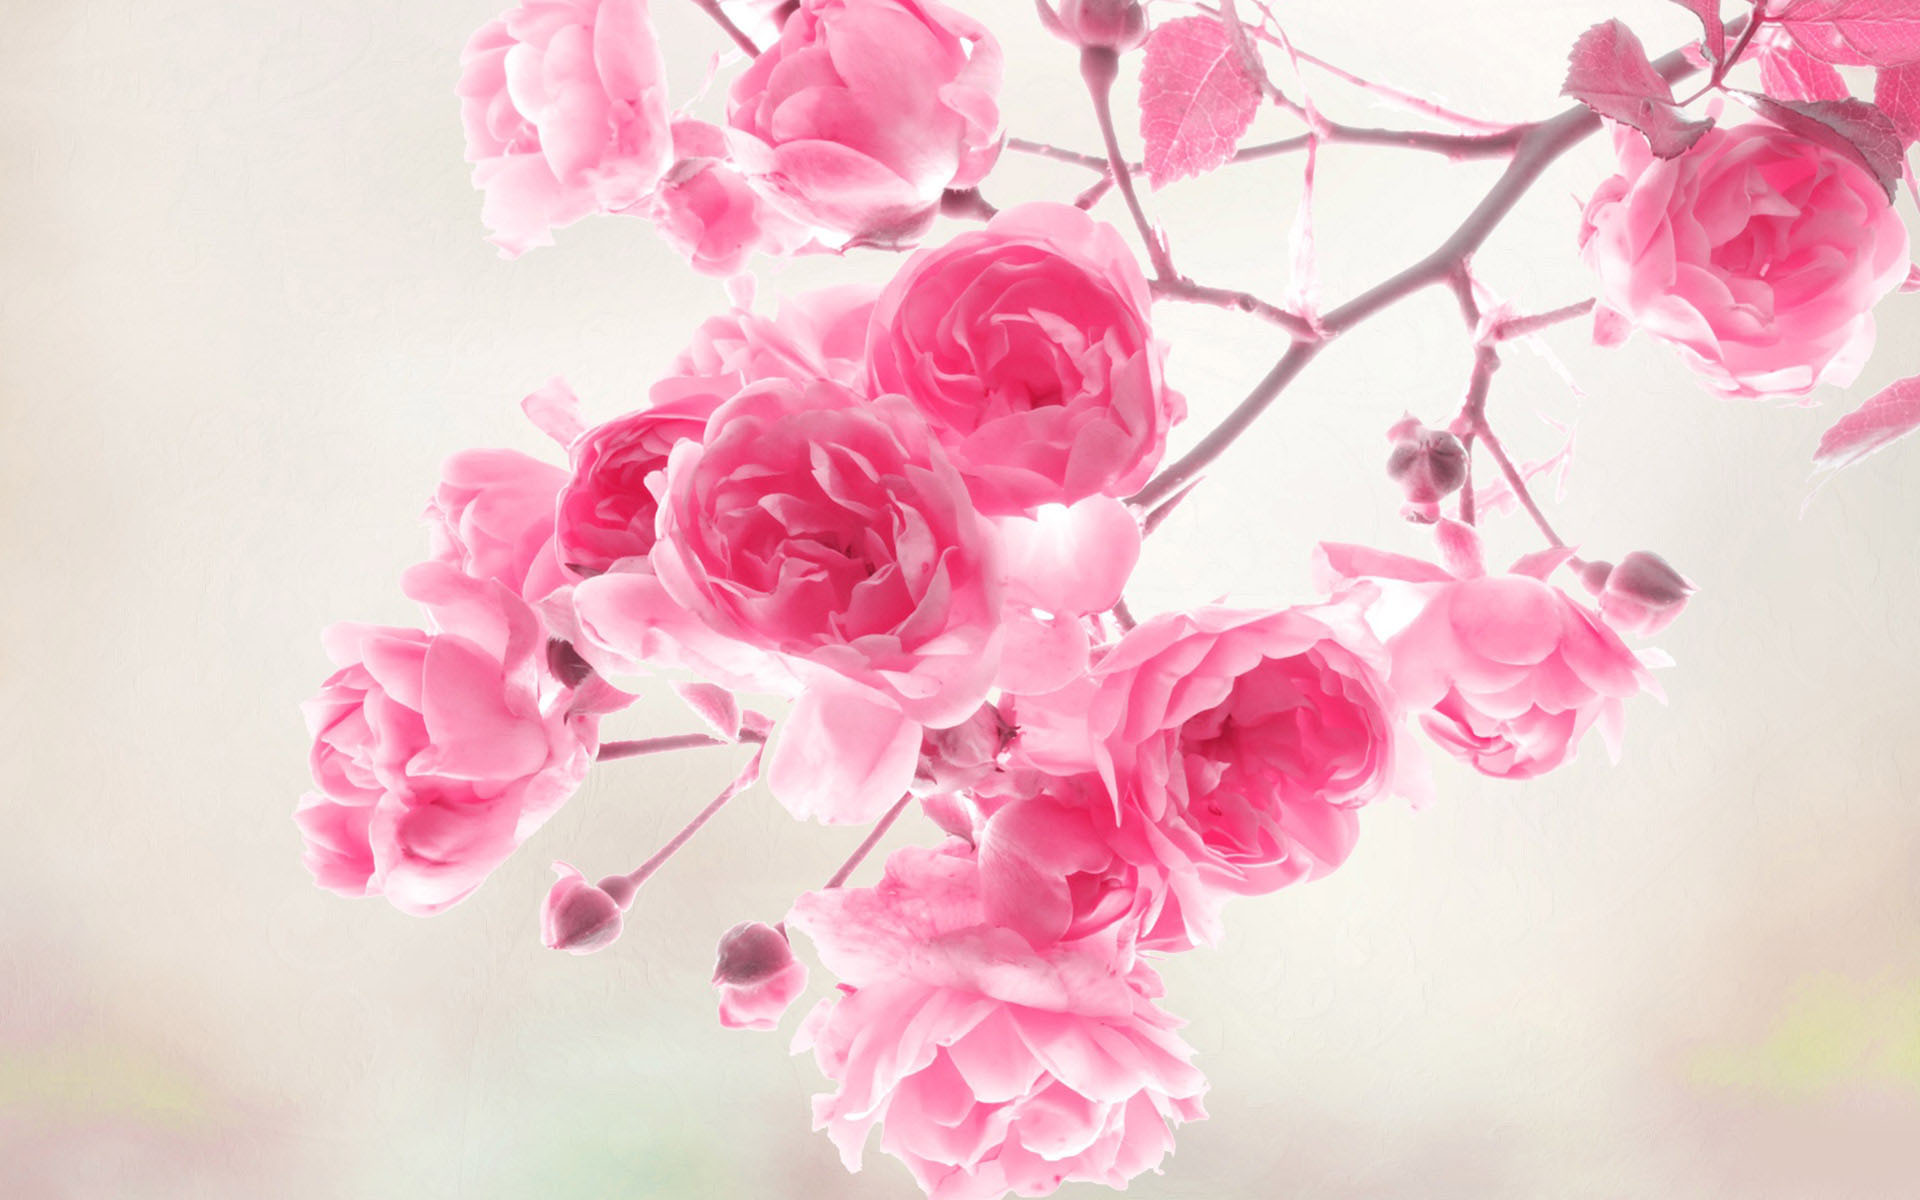 Flowers Wallpaper